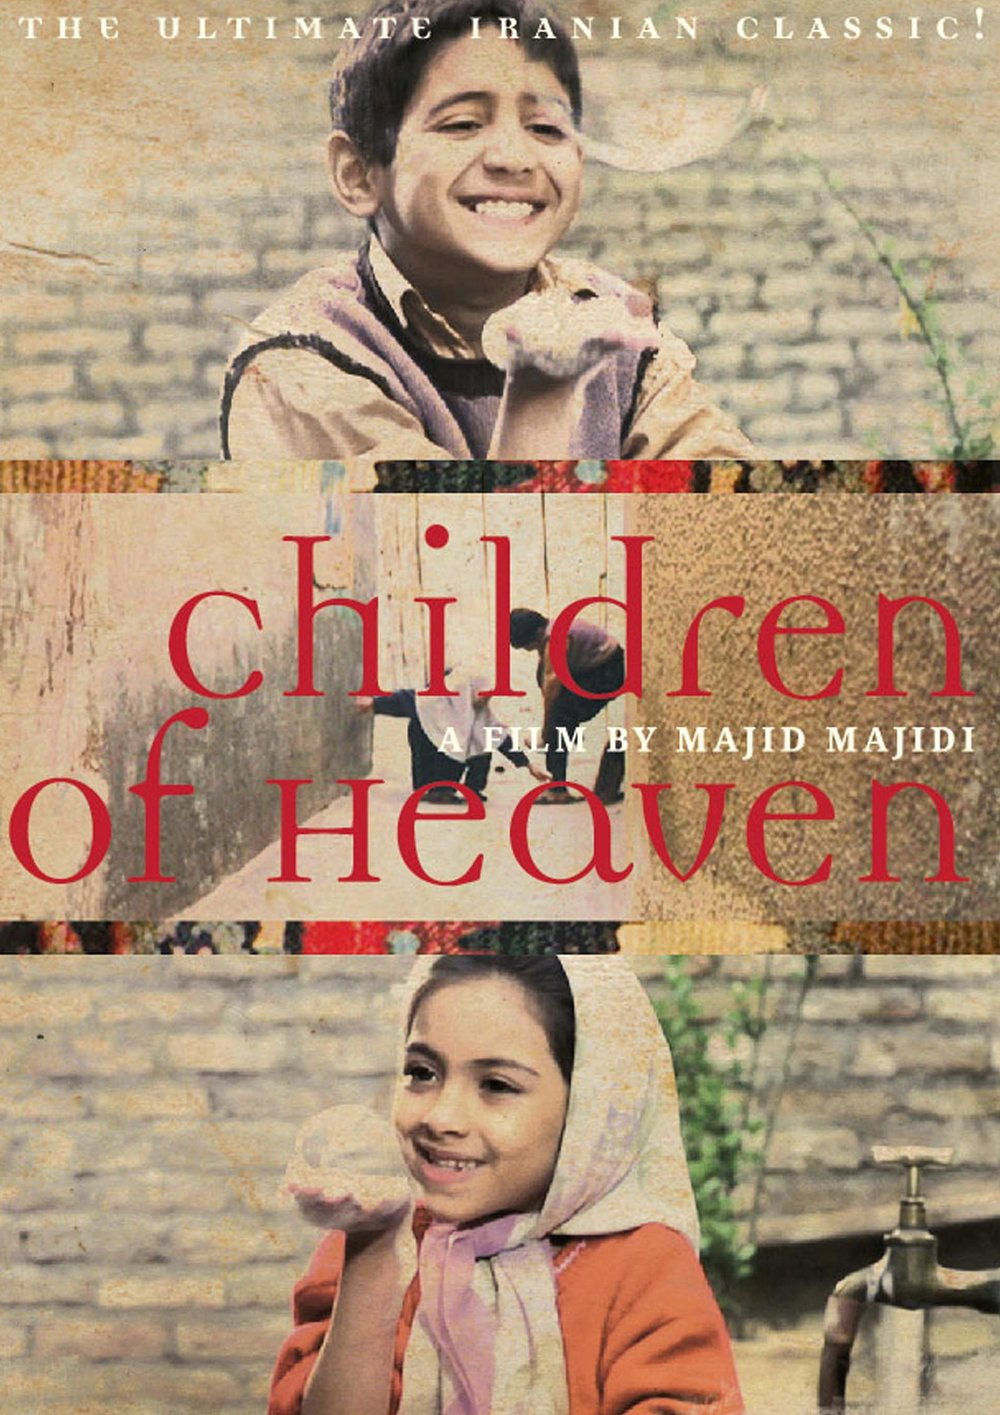 ChildrenOfHeaven.jpg